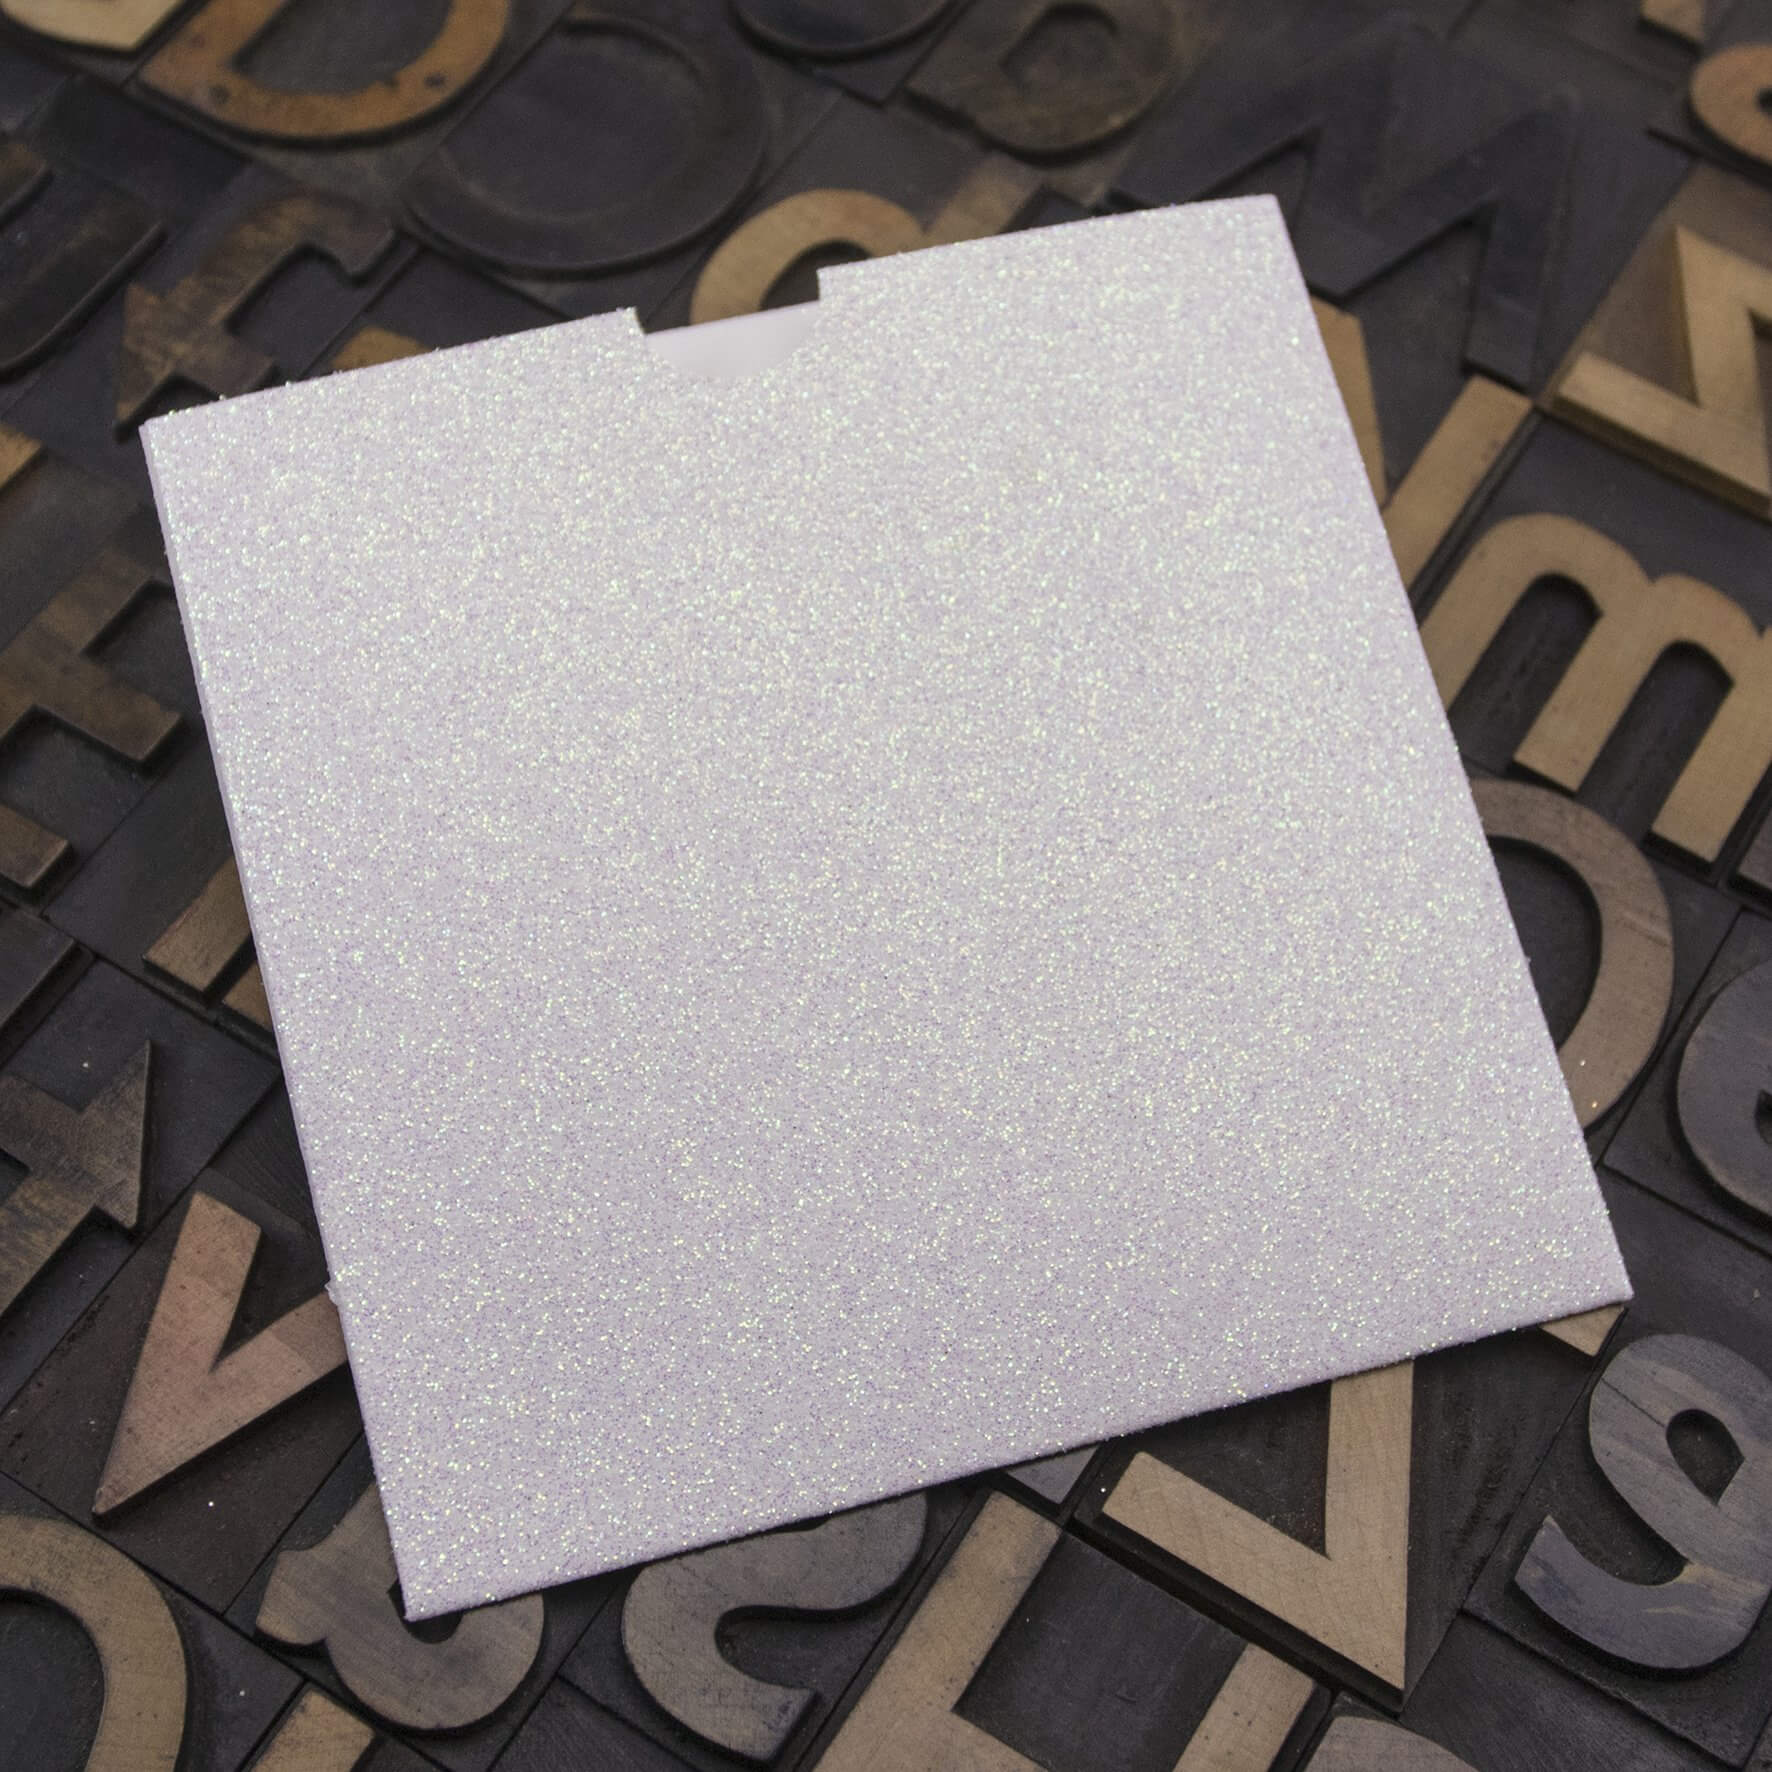 Enfolio Wallet 125mm Sq - Iridescent White Glitter Card